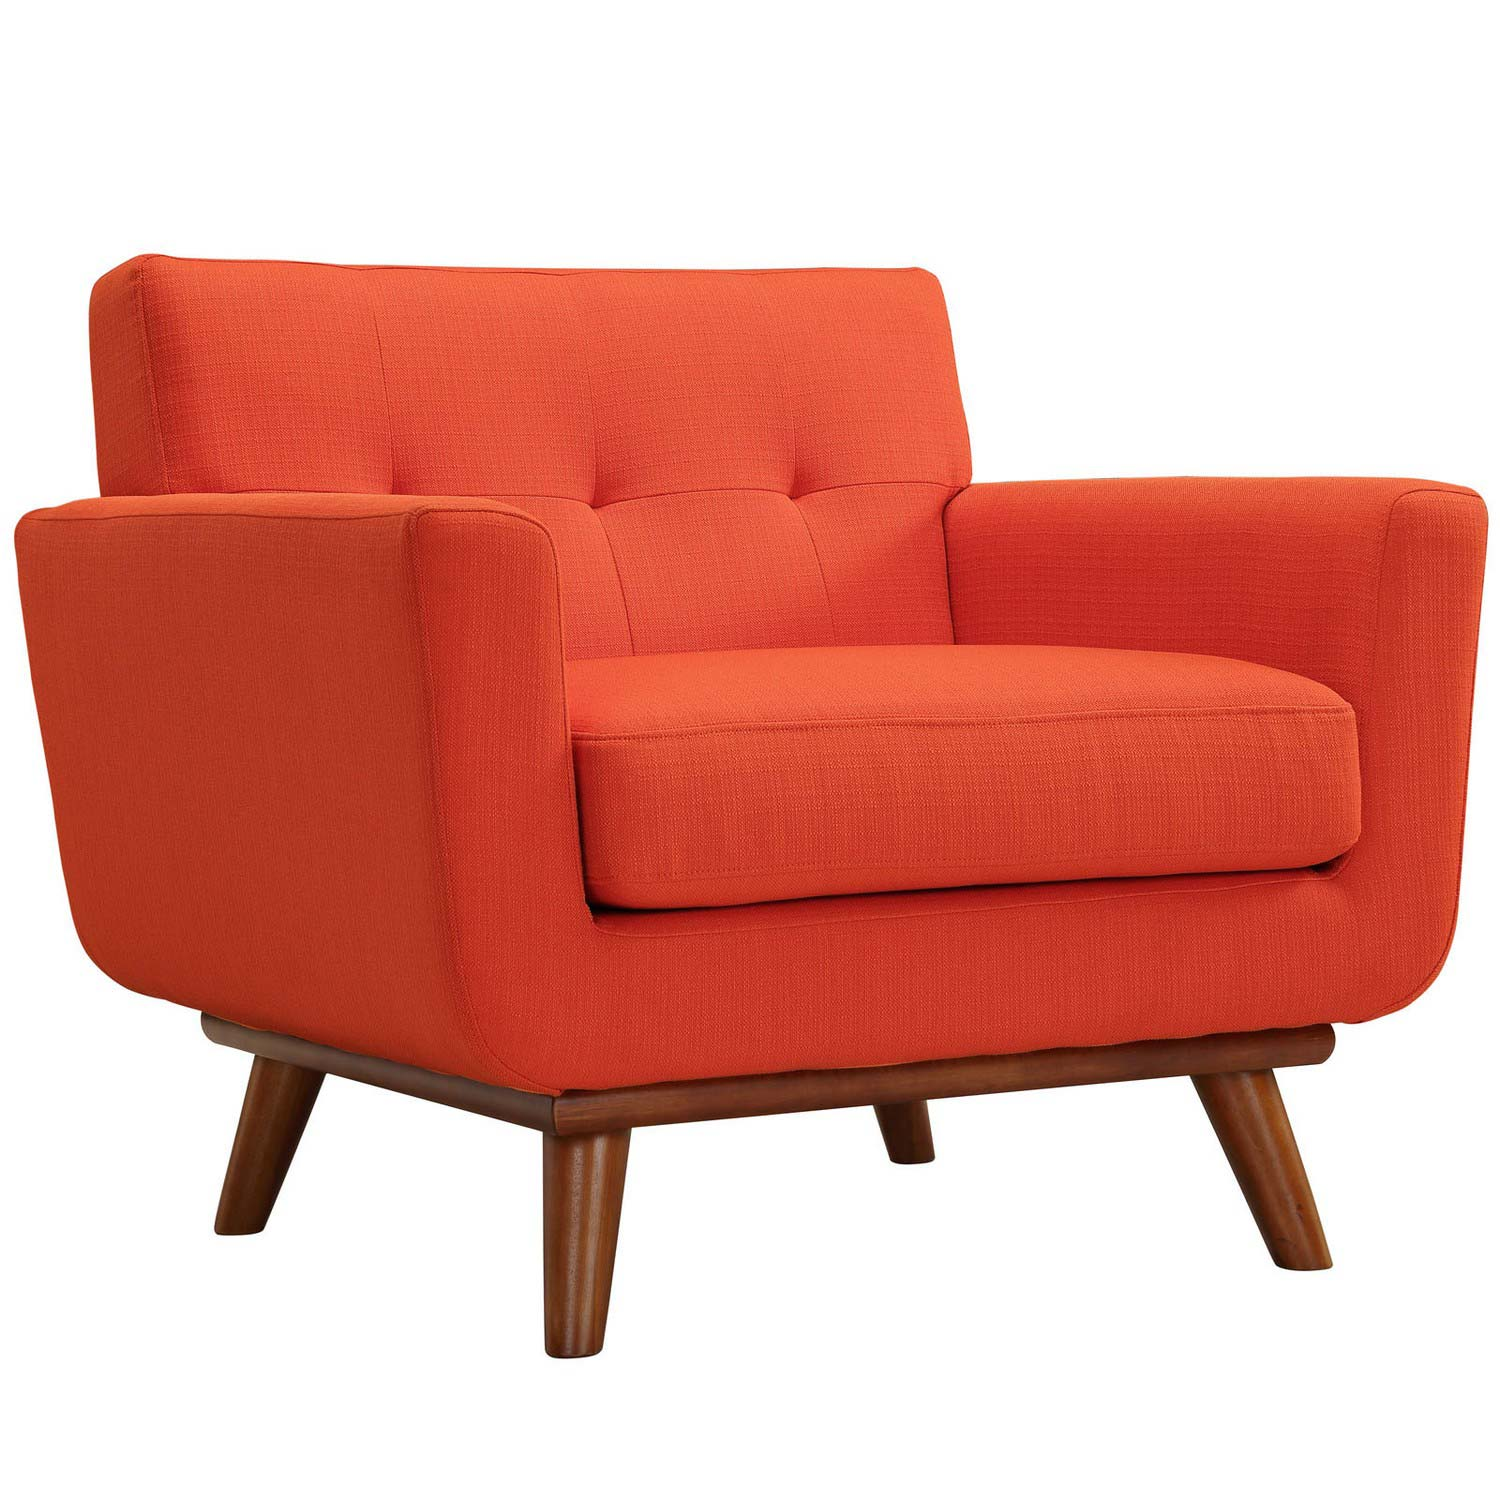 Modway Engage Armchairs and Sofa Set of 3 - Atomic Red